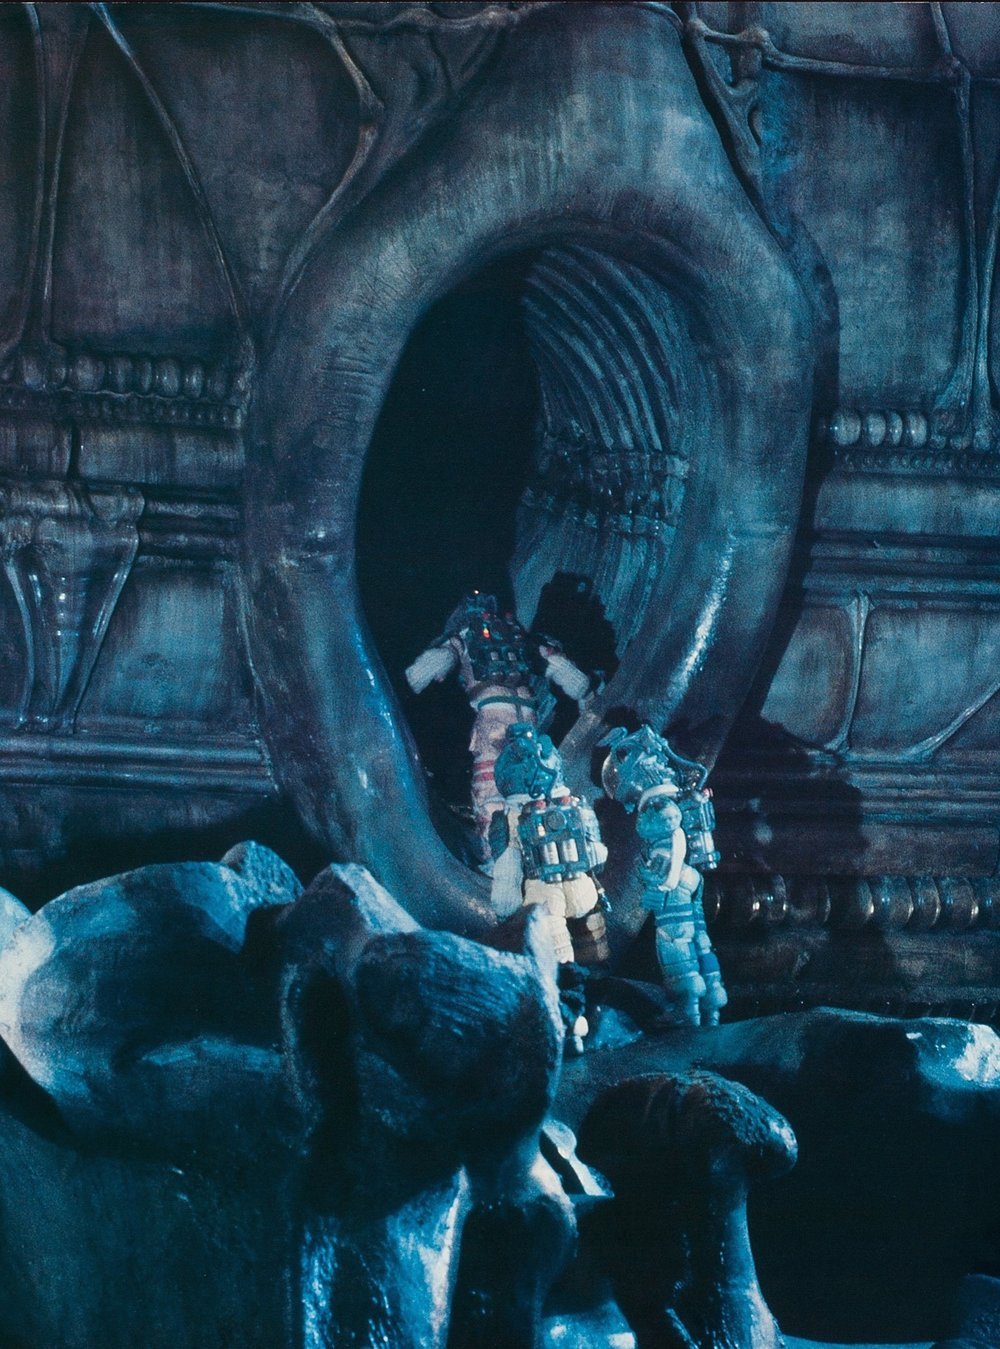 The crew of the Nostromo enter the suggestive organic openings of the derelict alien spacecraft.